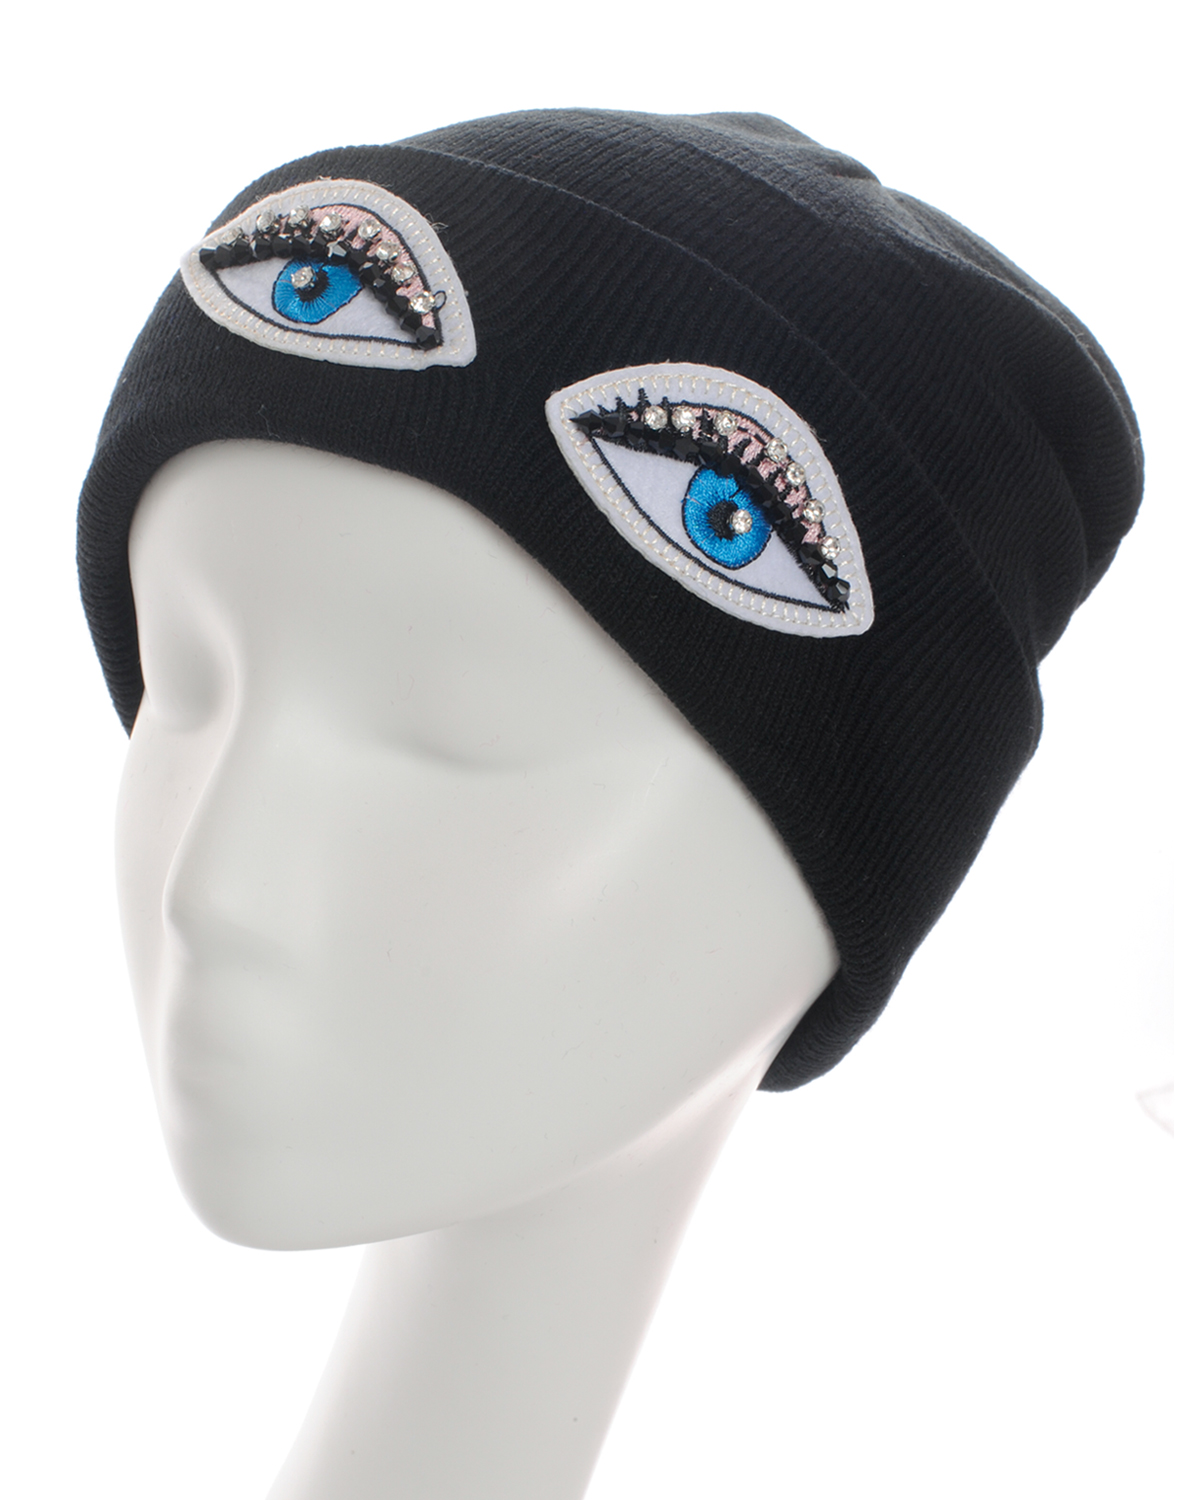 SS0644(BK)-wholesale-beanie-eyes-embroidered-rhinestones-black-beads-solid-color-knitted-stretch-fitted-acrylic(0).jpg